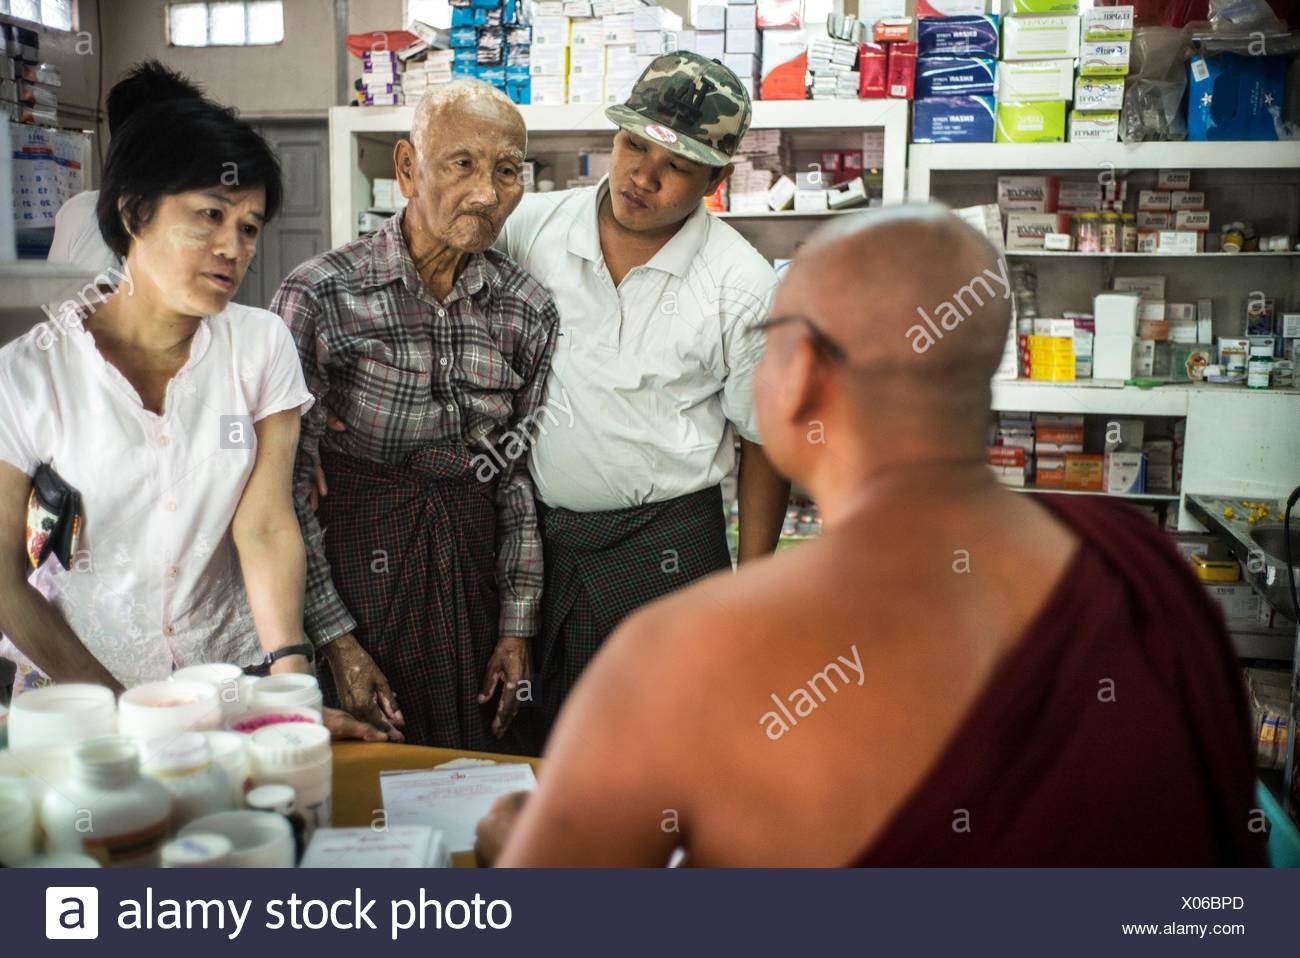 A group of people waiting at a clinic. - Stock Image